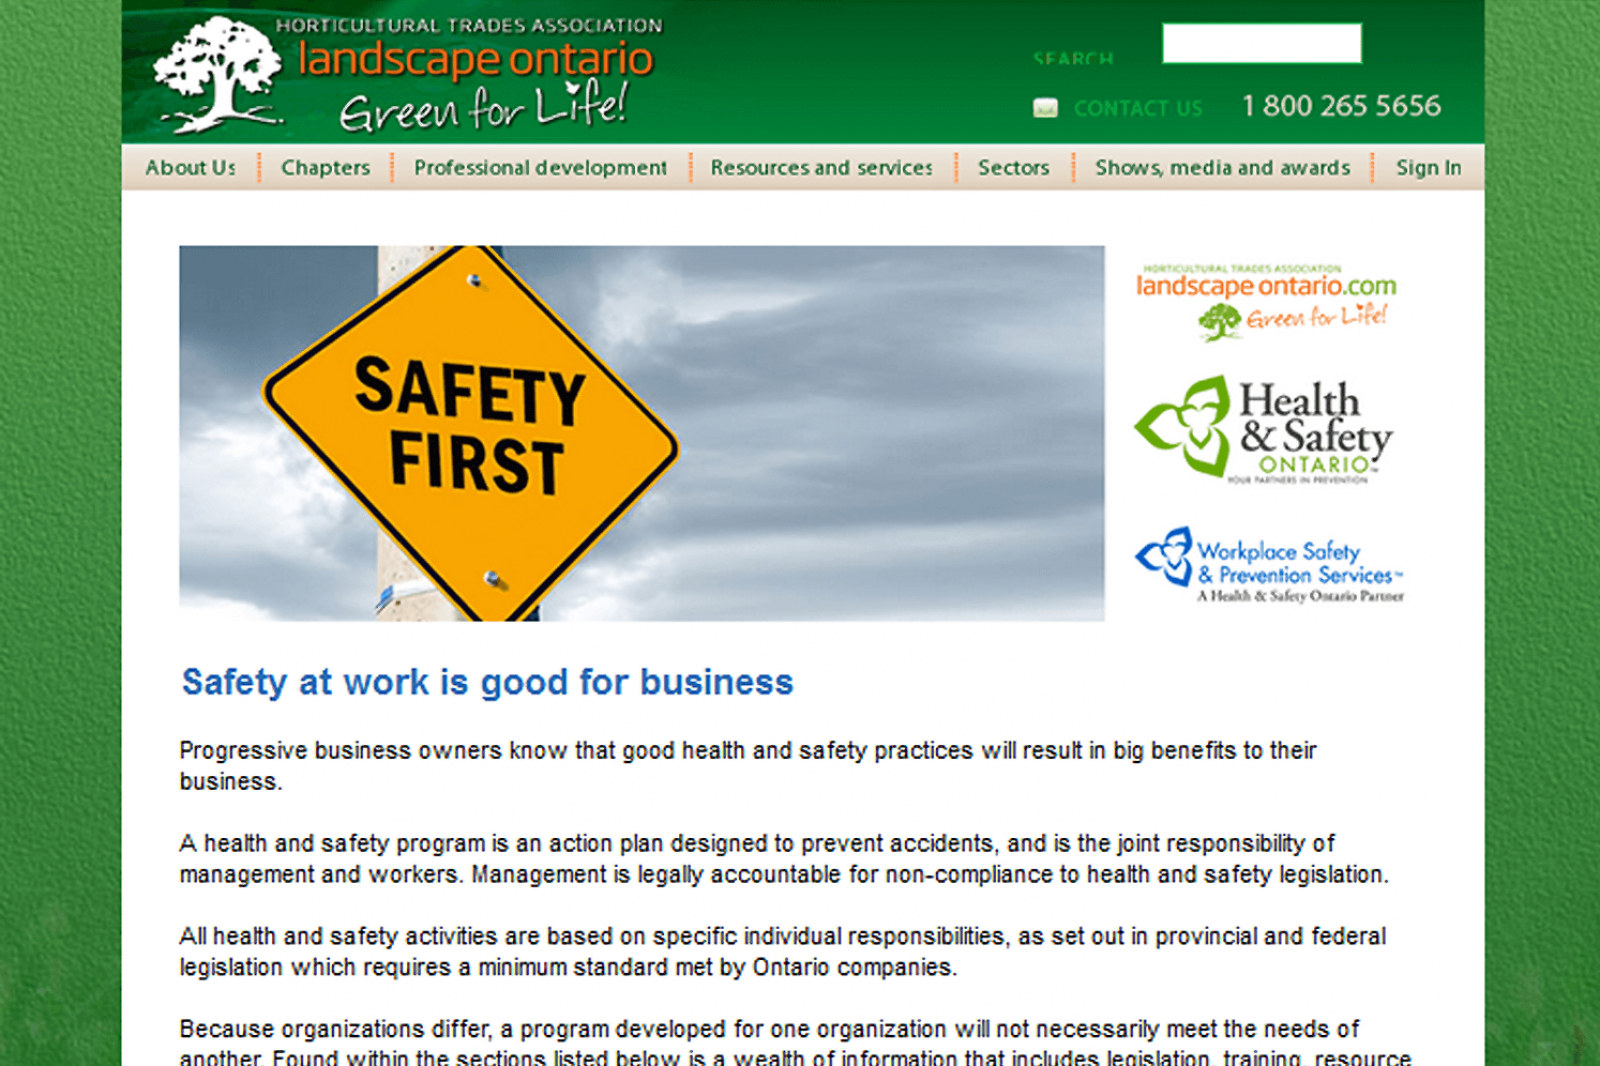 Association has proud record of promoting safe work practices